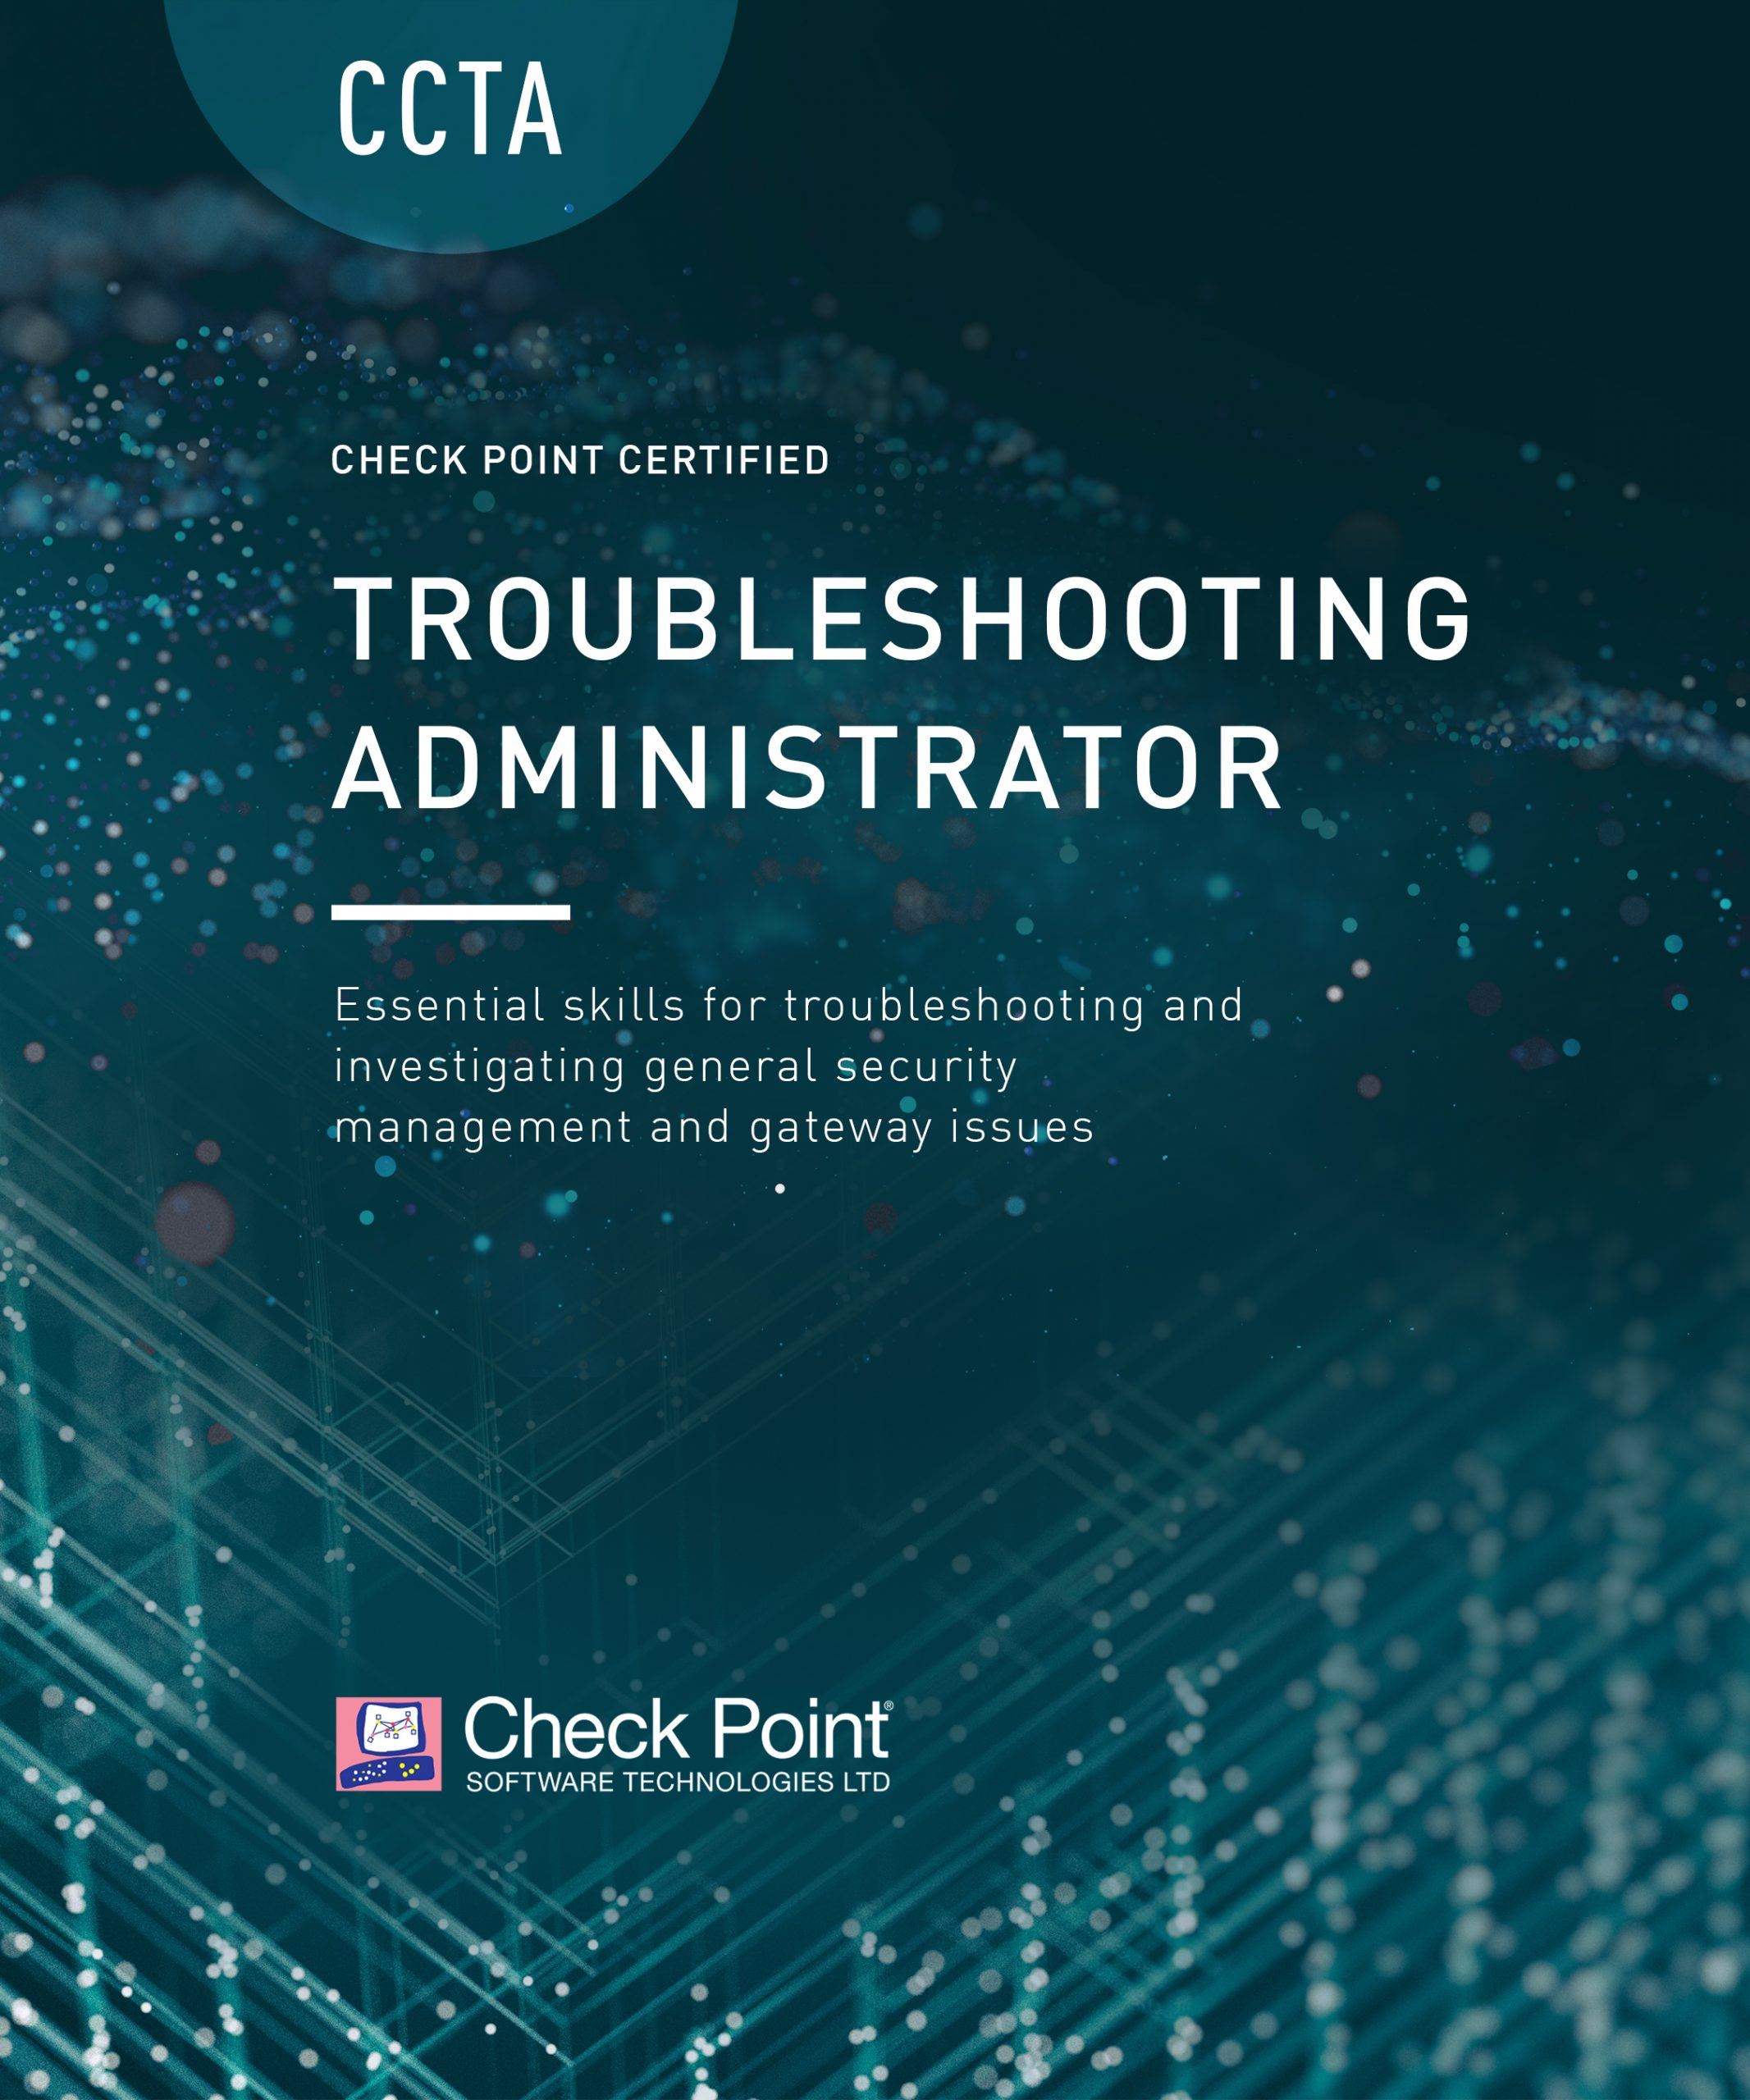 CPT-CCTA – Check Point Certified Troubleshooting Administrator (CCTA)